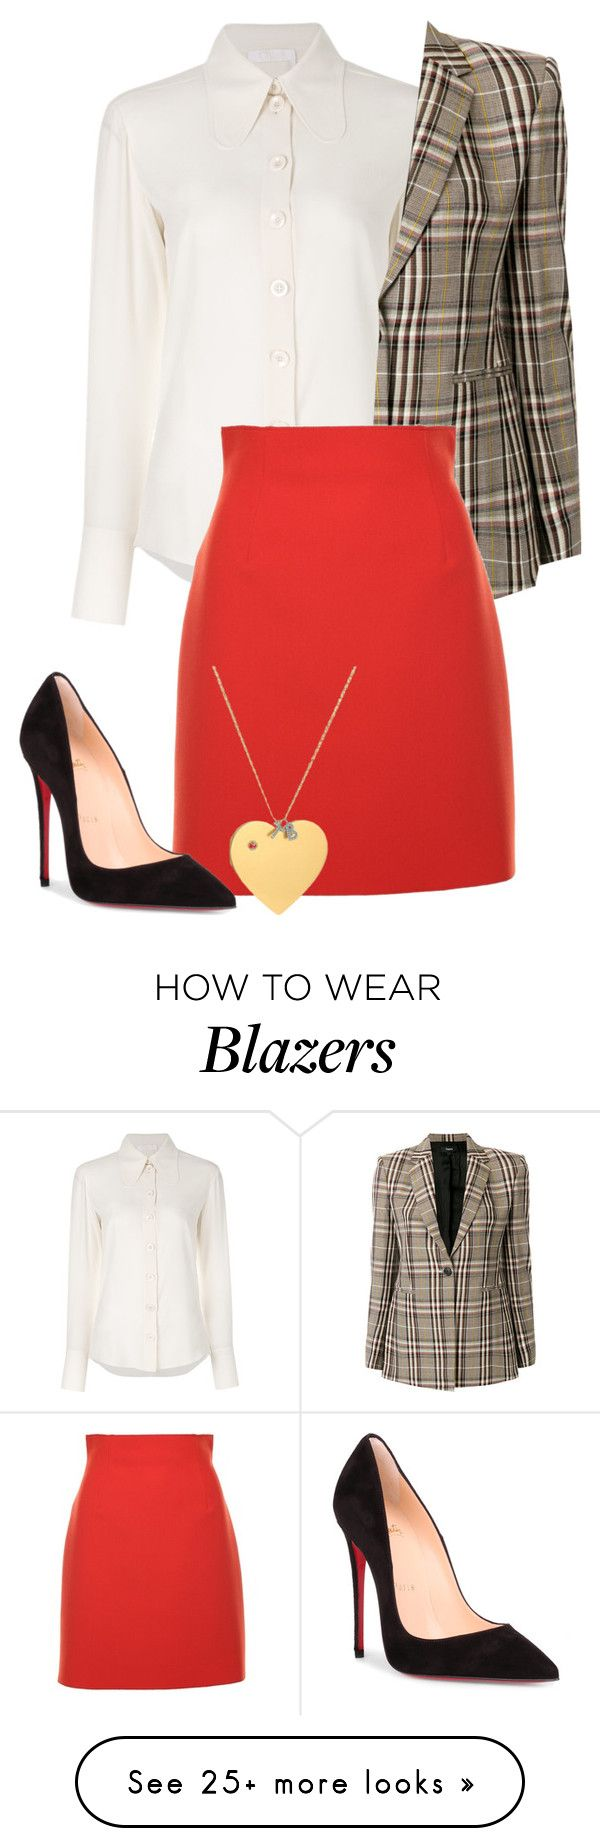 """""""heather chandler"""" by eemotions on Polyvore featuring Chloé, Theory, MSGM, Christian Louboutin and Tory Burch"""